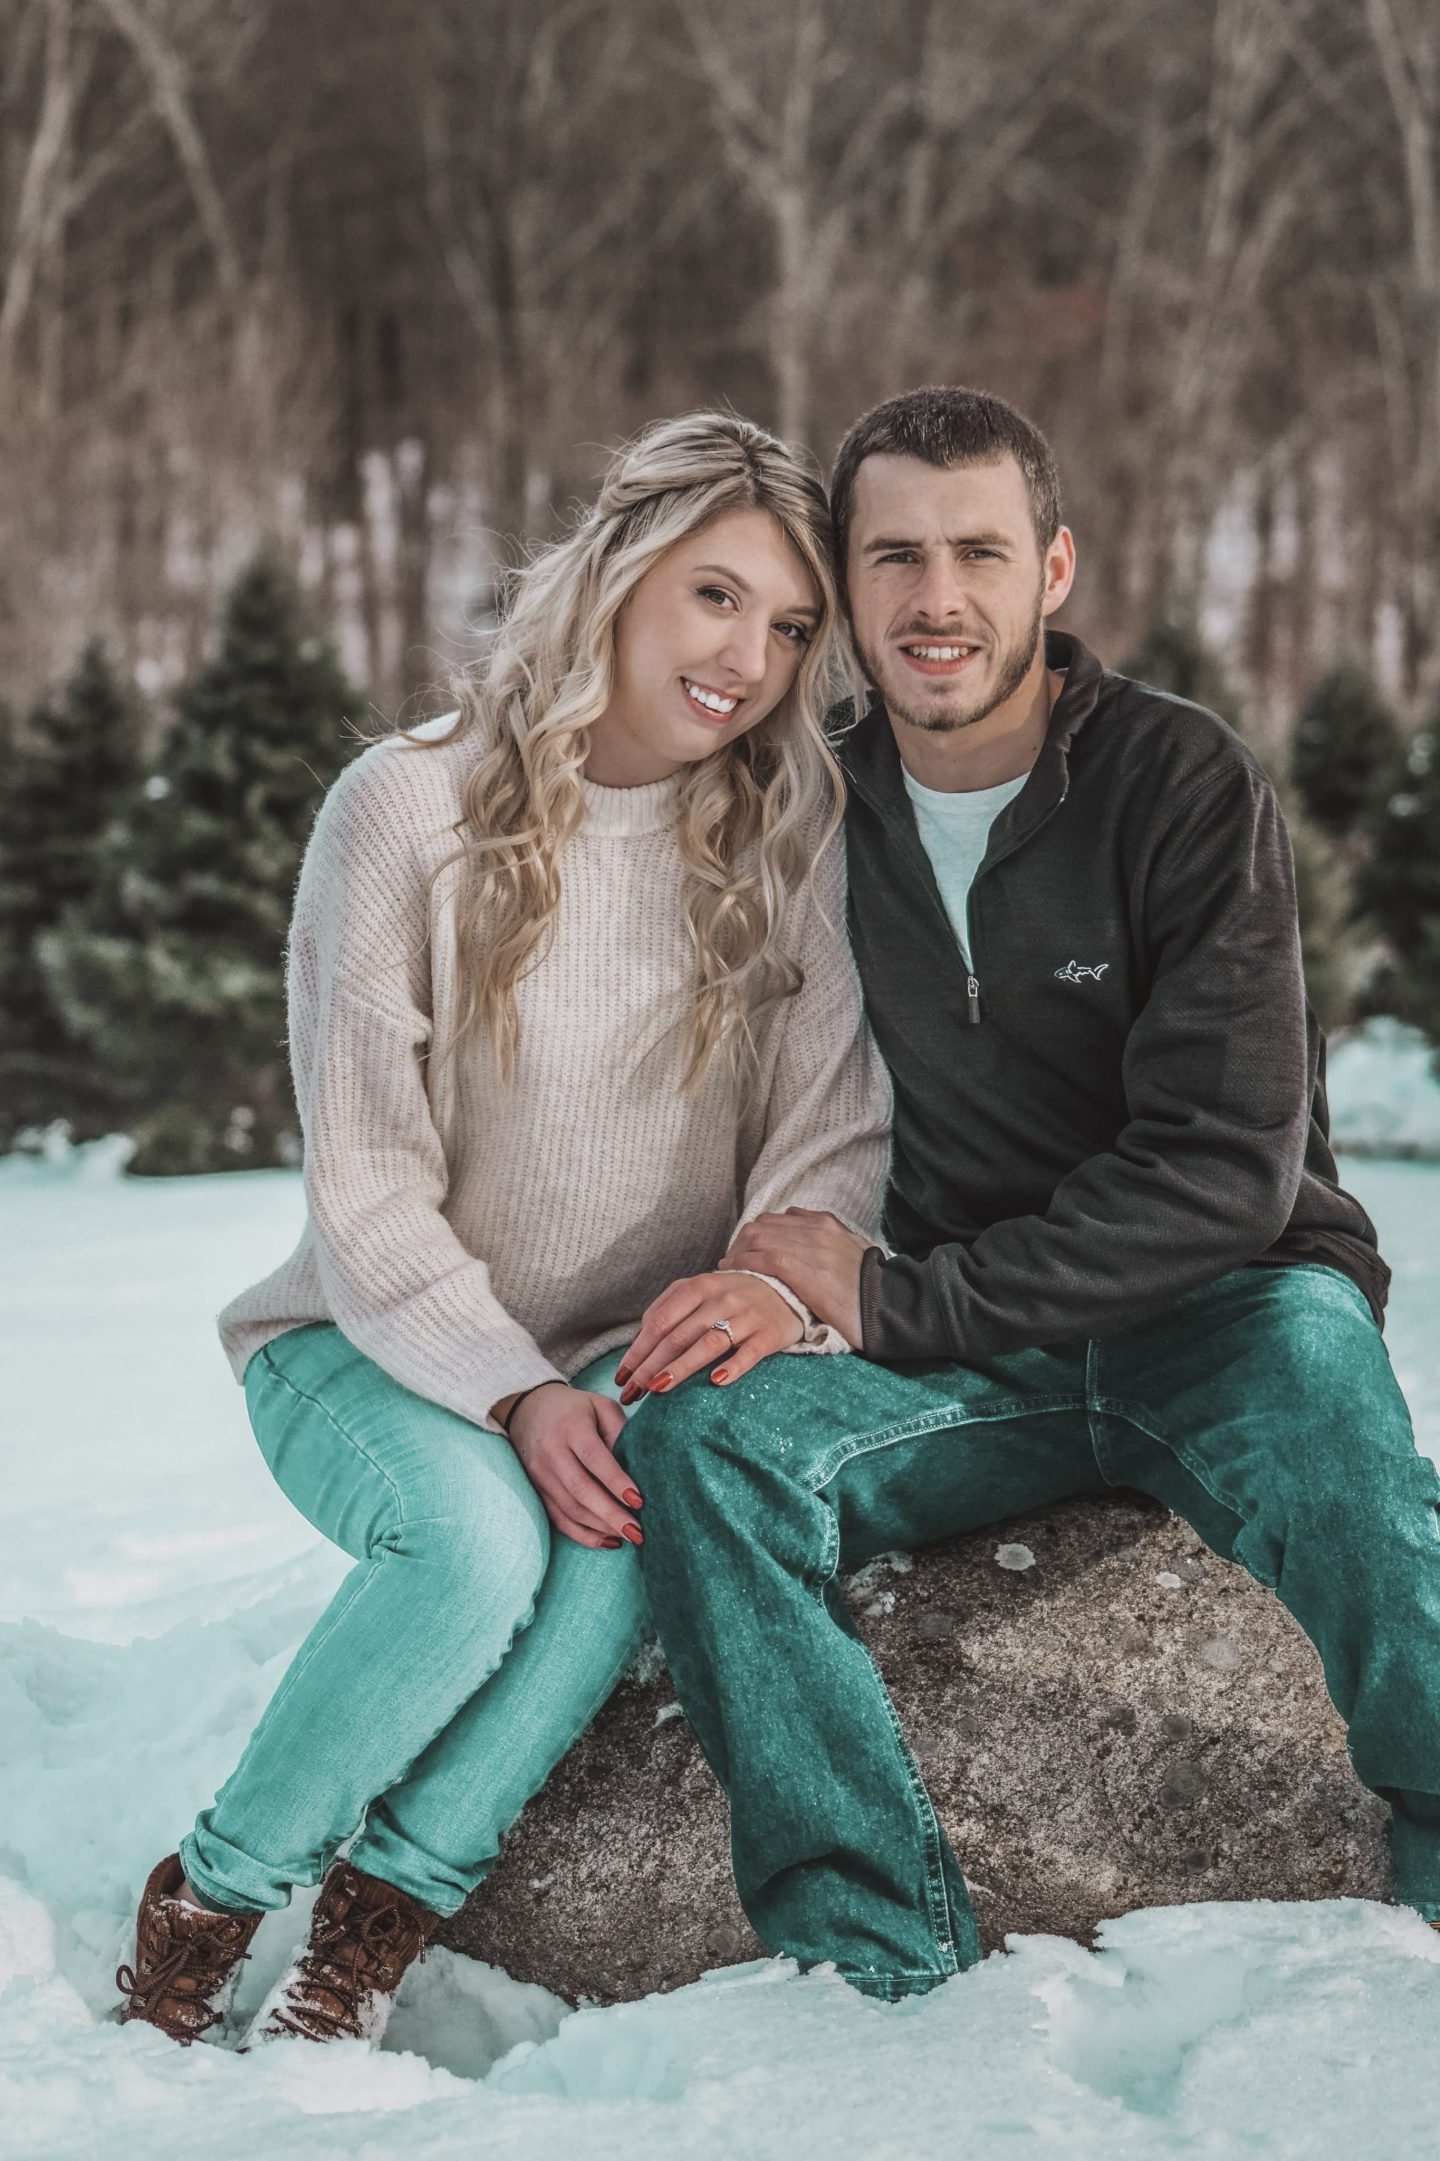 Winter engagement photo ideas.